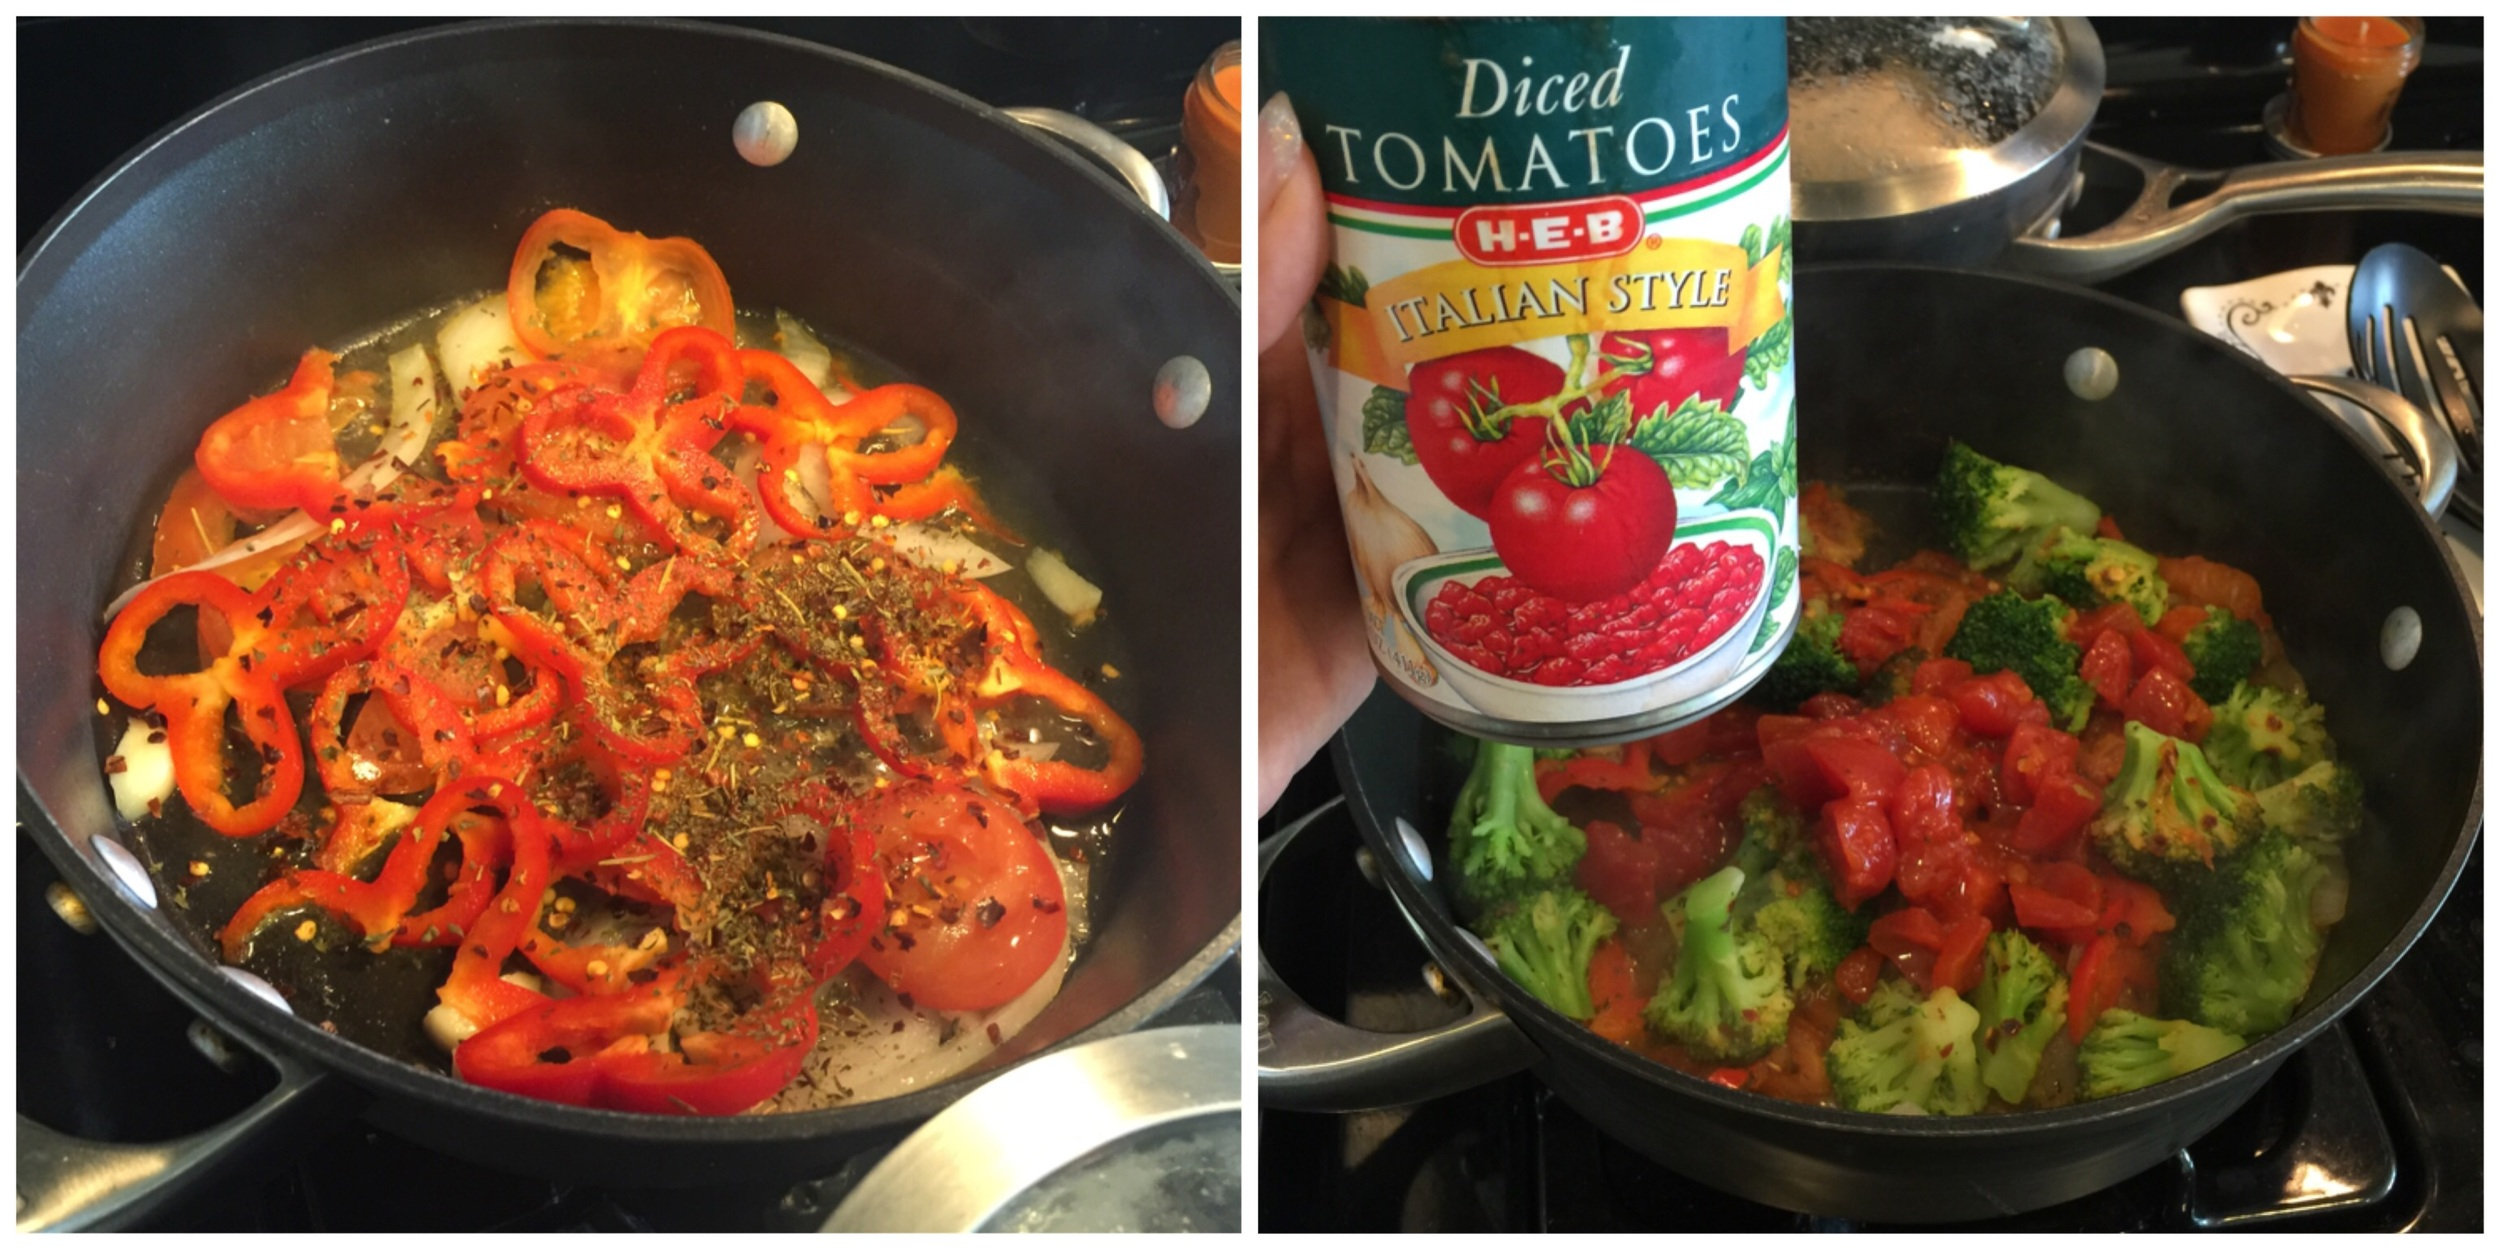 I like to add broccoli and spinach to my pasta sauce but it will get soggy pretty quick. For that reason I only keep it on the flame for a few minutes. You can add Italian seasoning like I did; for more flavor use half a can of Italian style diced tomatoes.